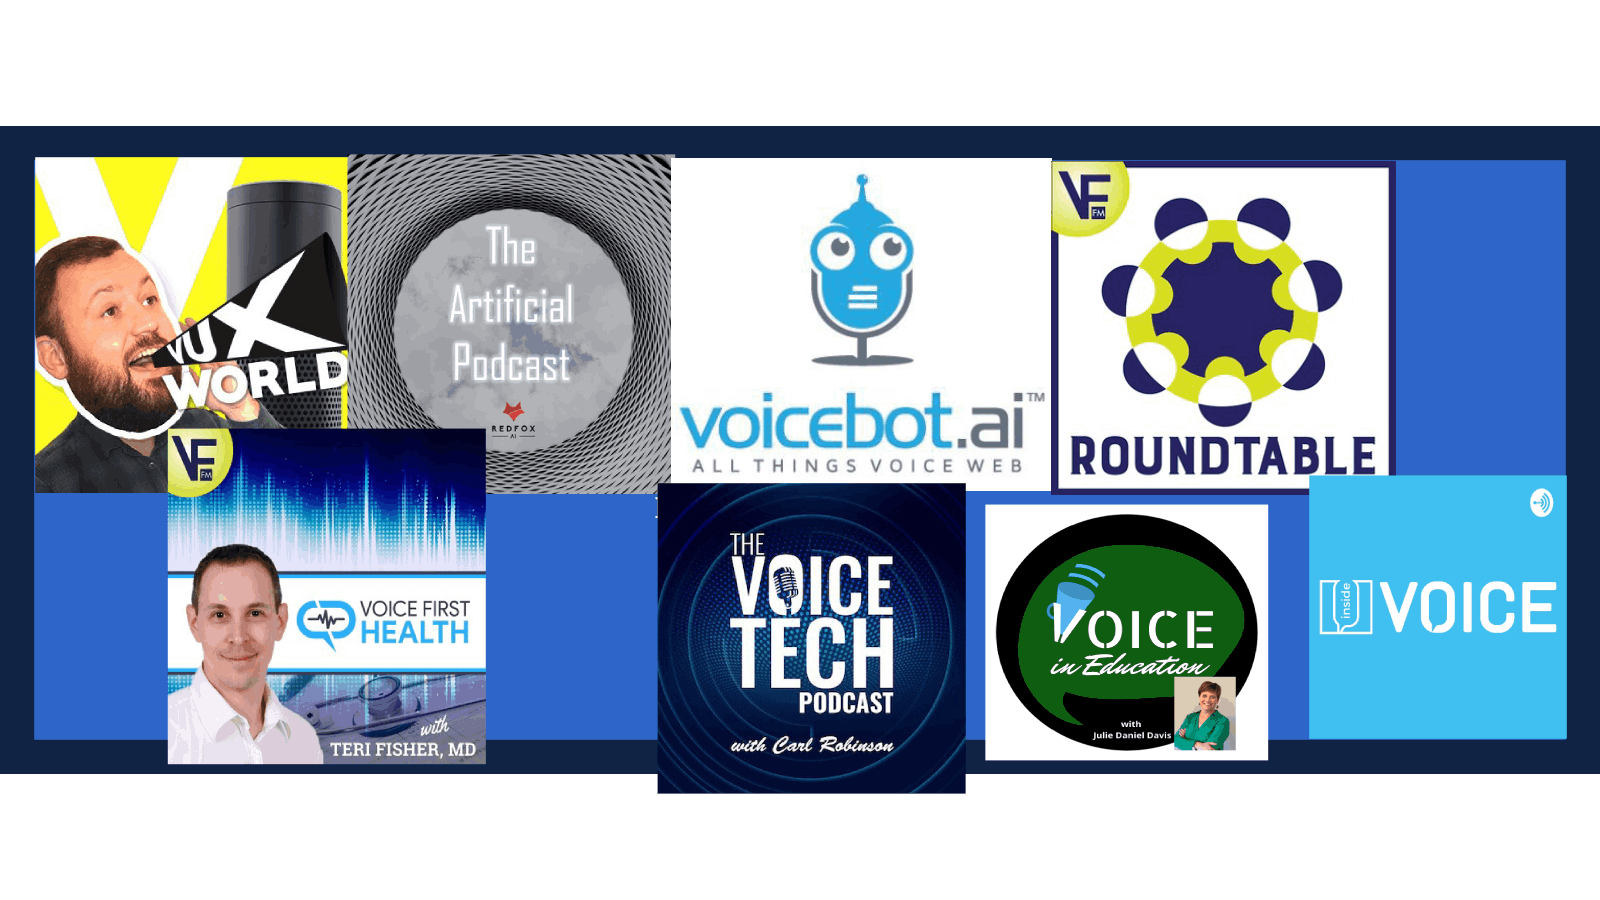 Behavioral-Signals-Voice-AI-Podcasts-You-Wont-Want-to-Miss-2020